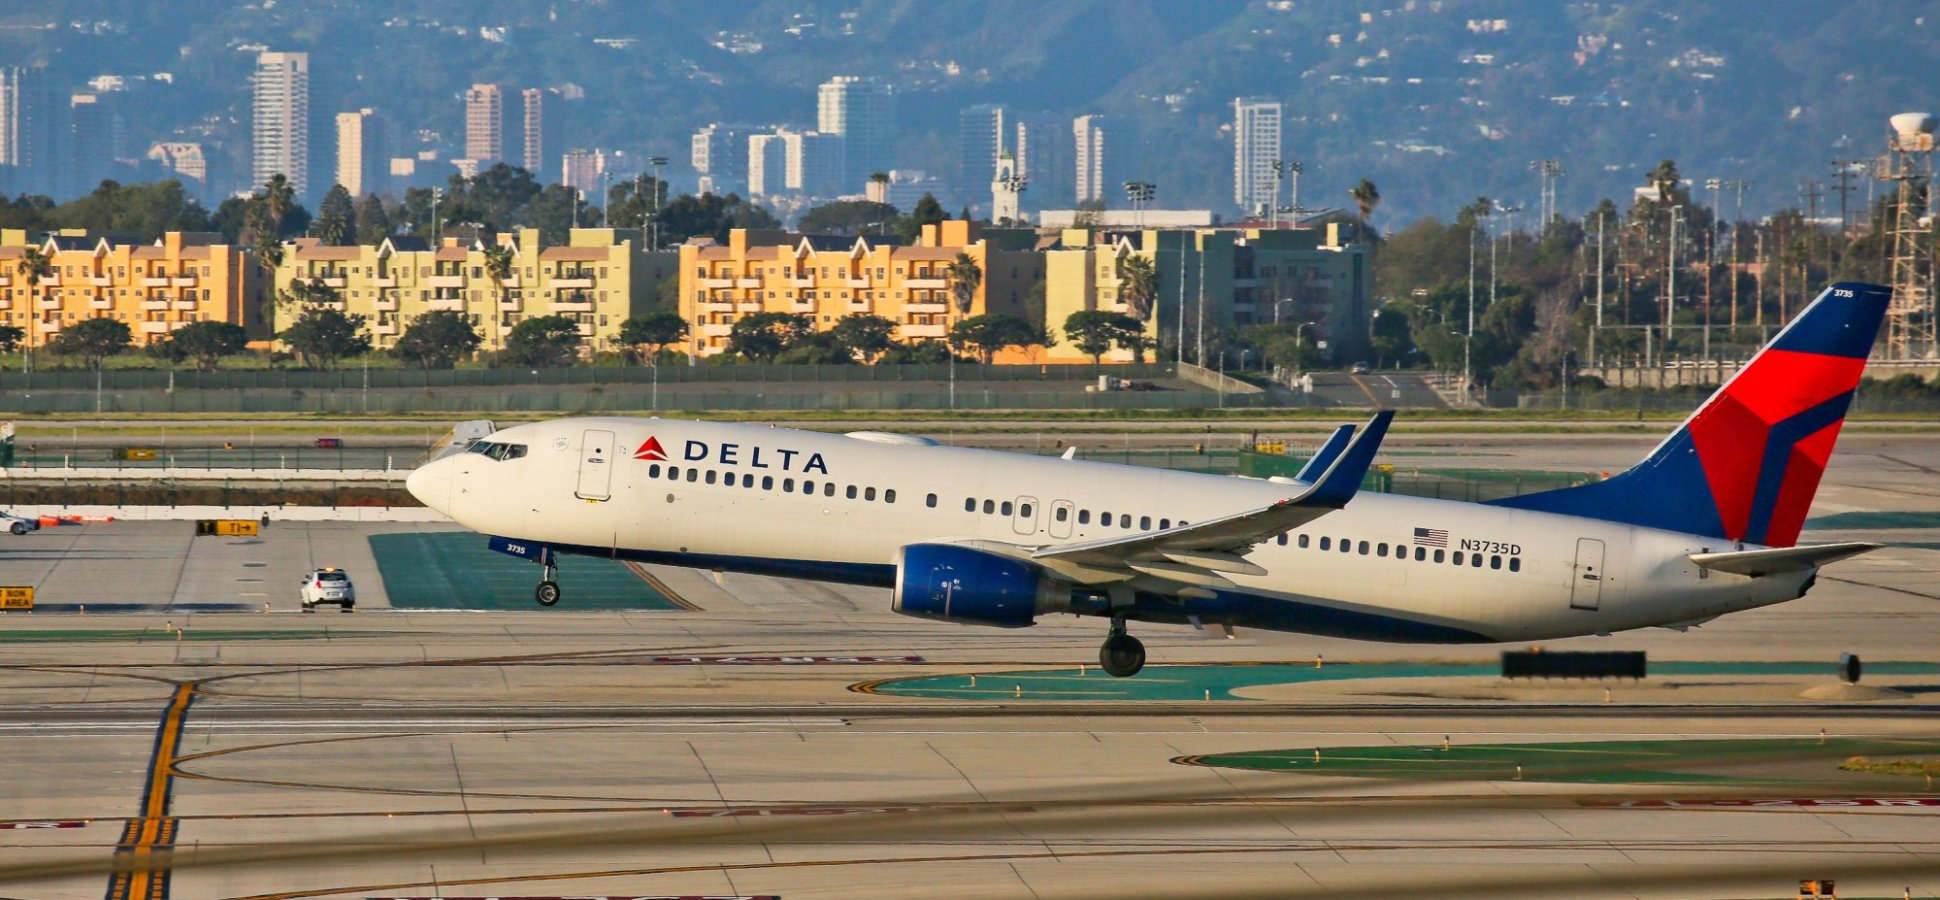 Delta Air Lines Just Revealed It's Making a Lot of Money From People You'd Never Expect (And Delta Never Expected Either)